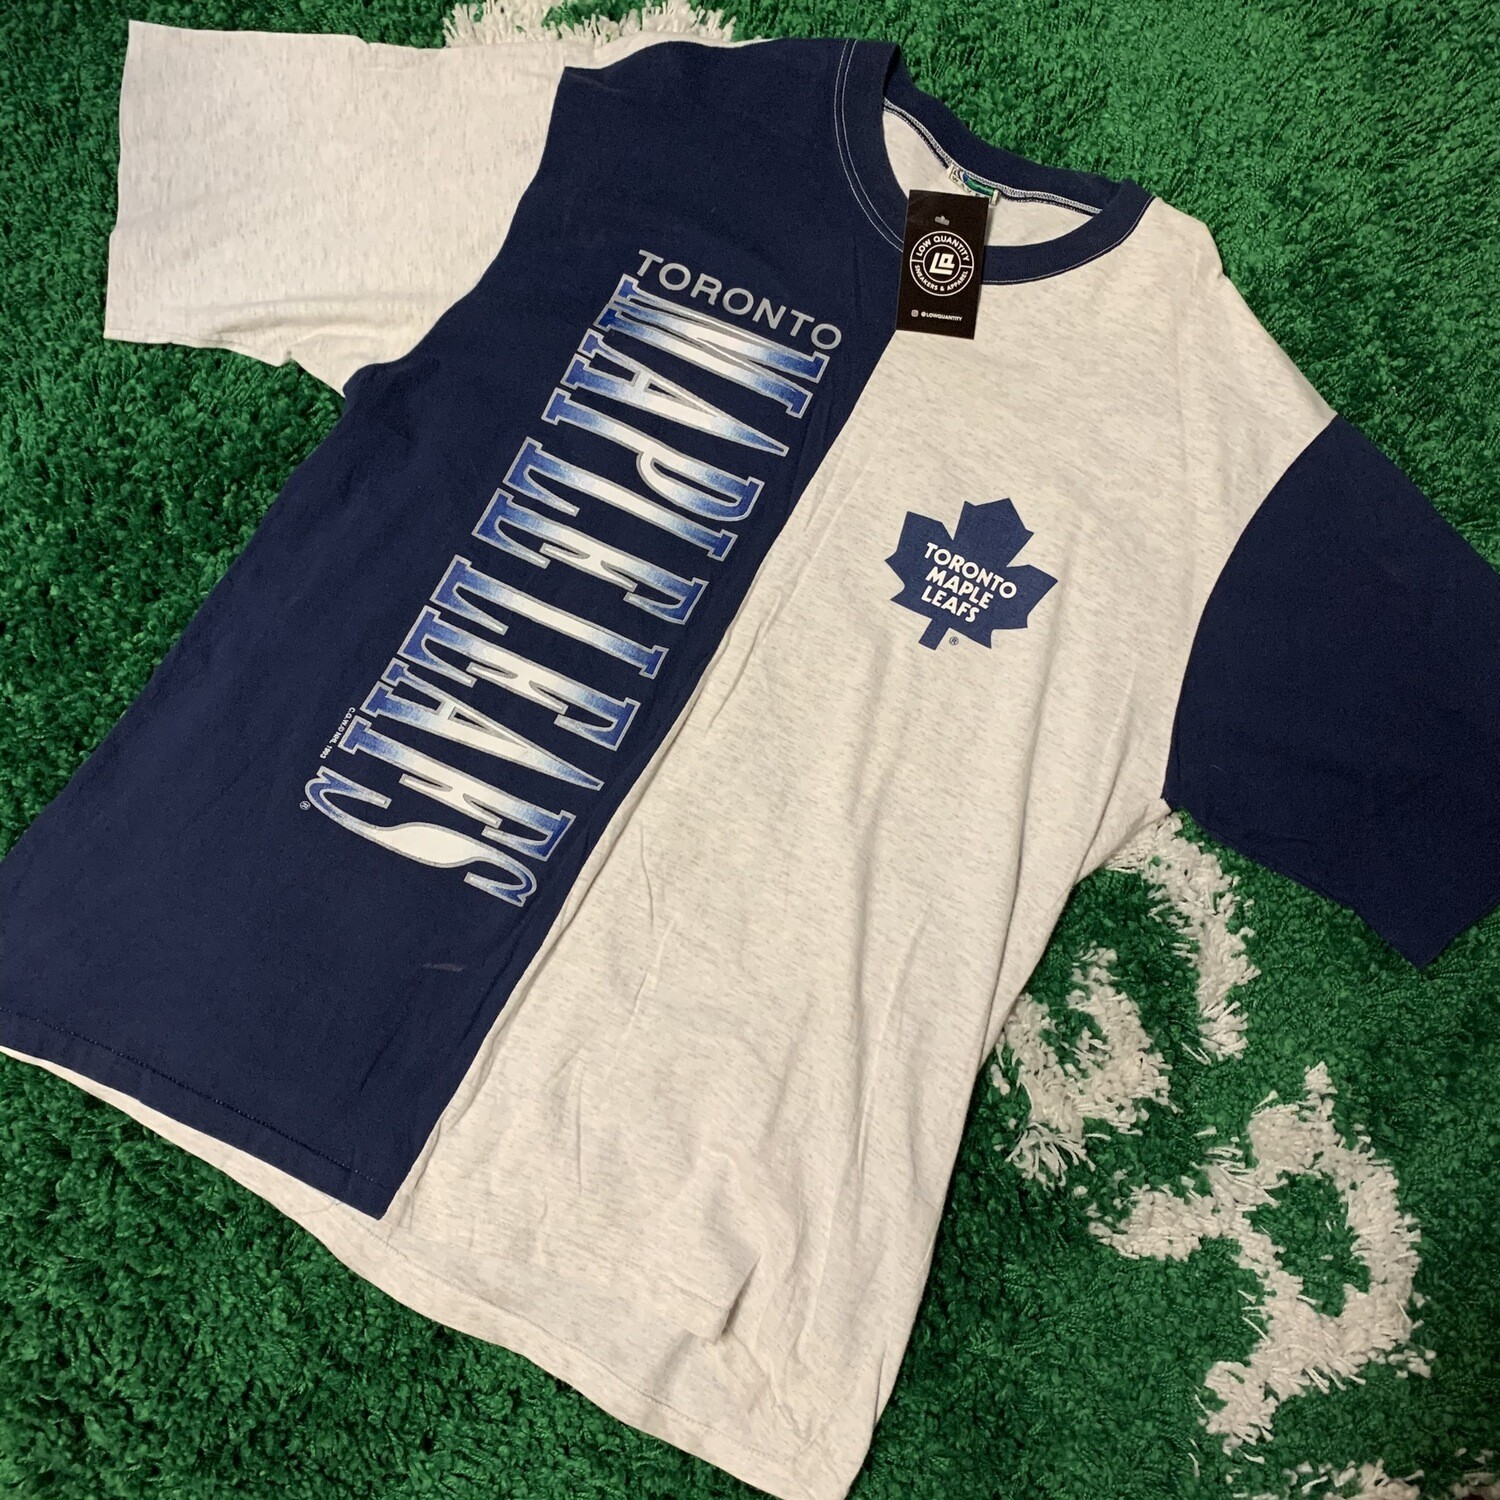 Toronto Maple Leafs Split Shirt Size XL